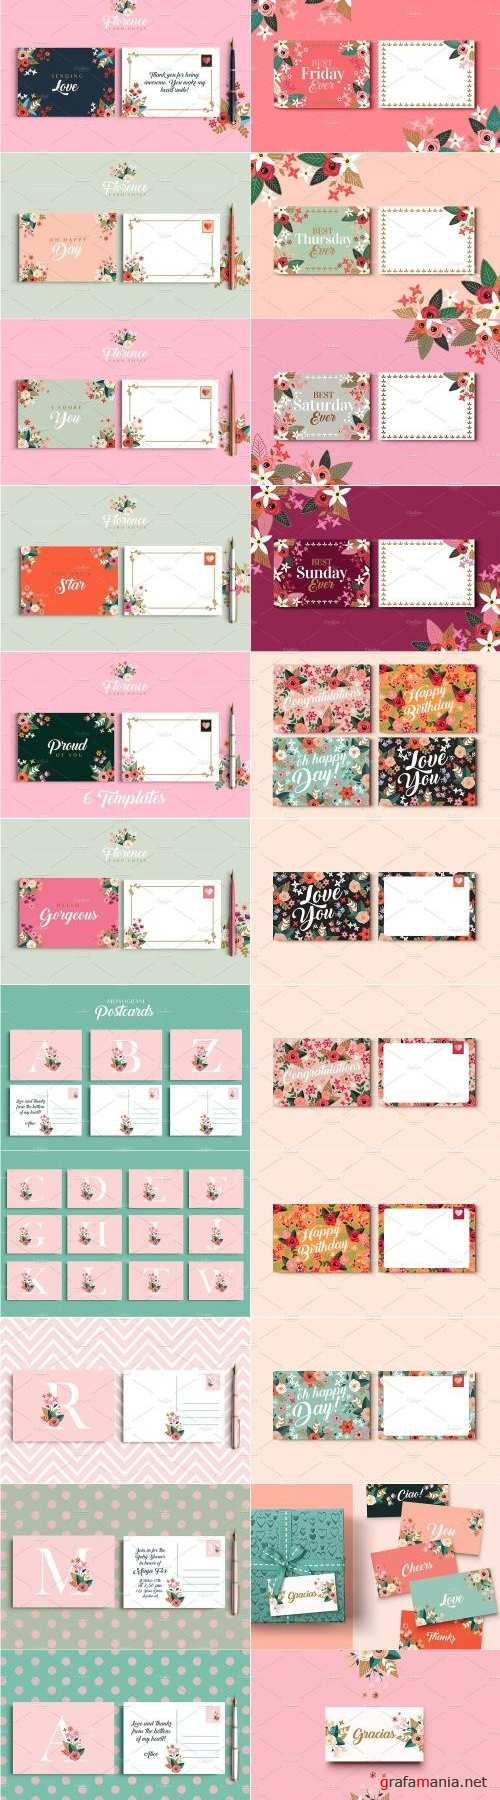 Greeting Cards Bundle - 48 Designs! - 2362019